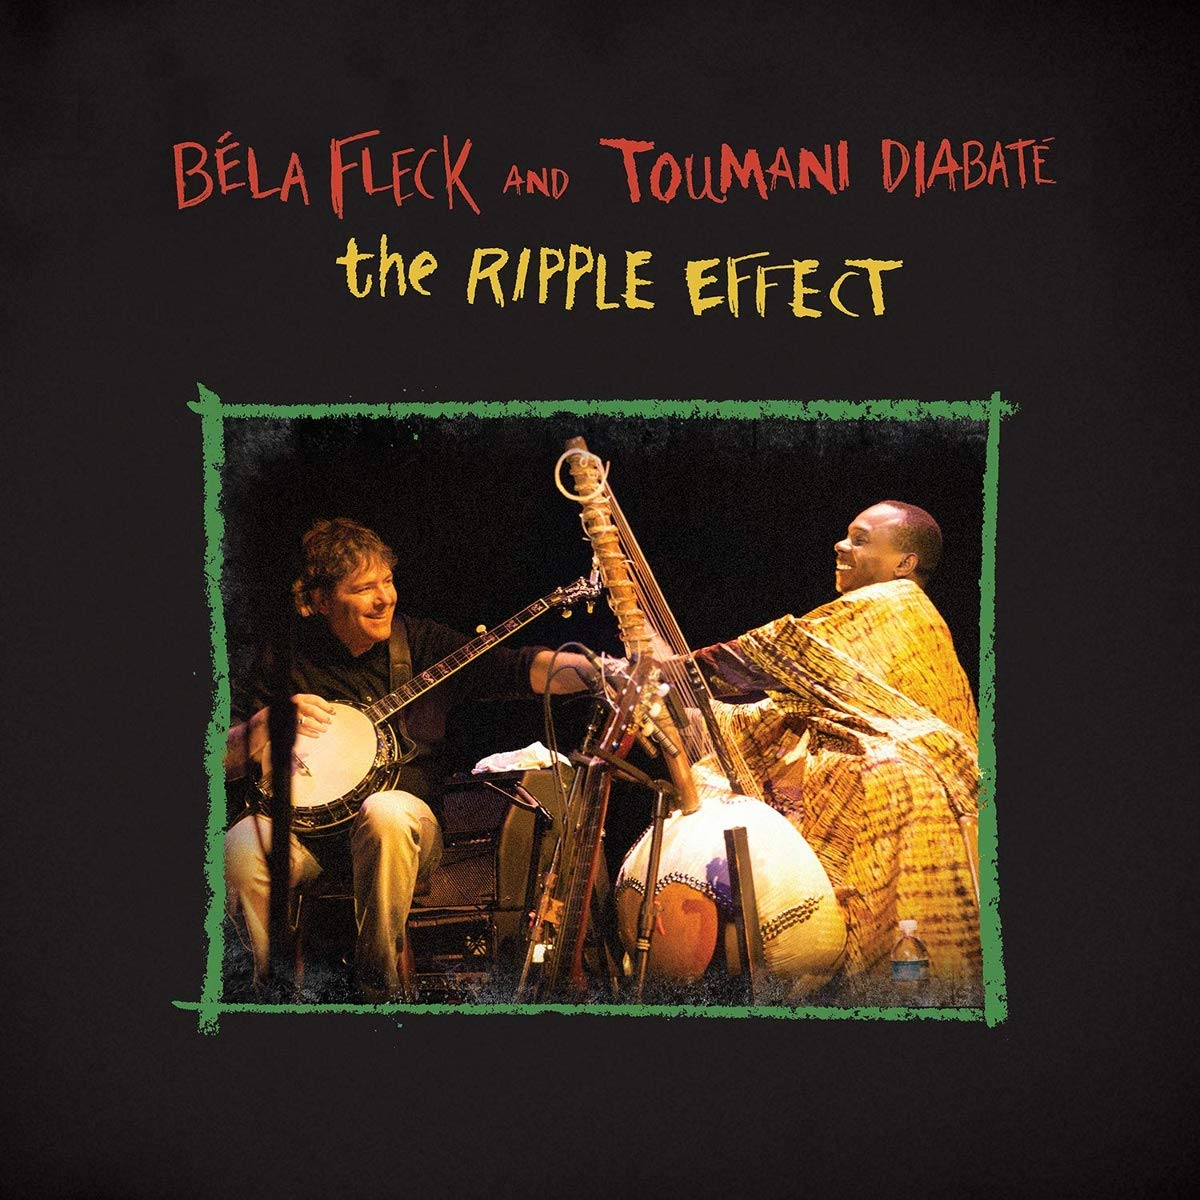 BÉLA FLECK - Béla Fleck & Toumani Diabaté : The Ripple Effect cover